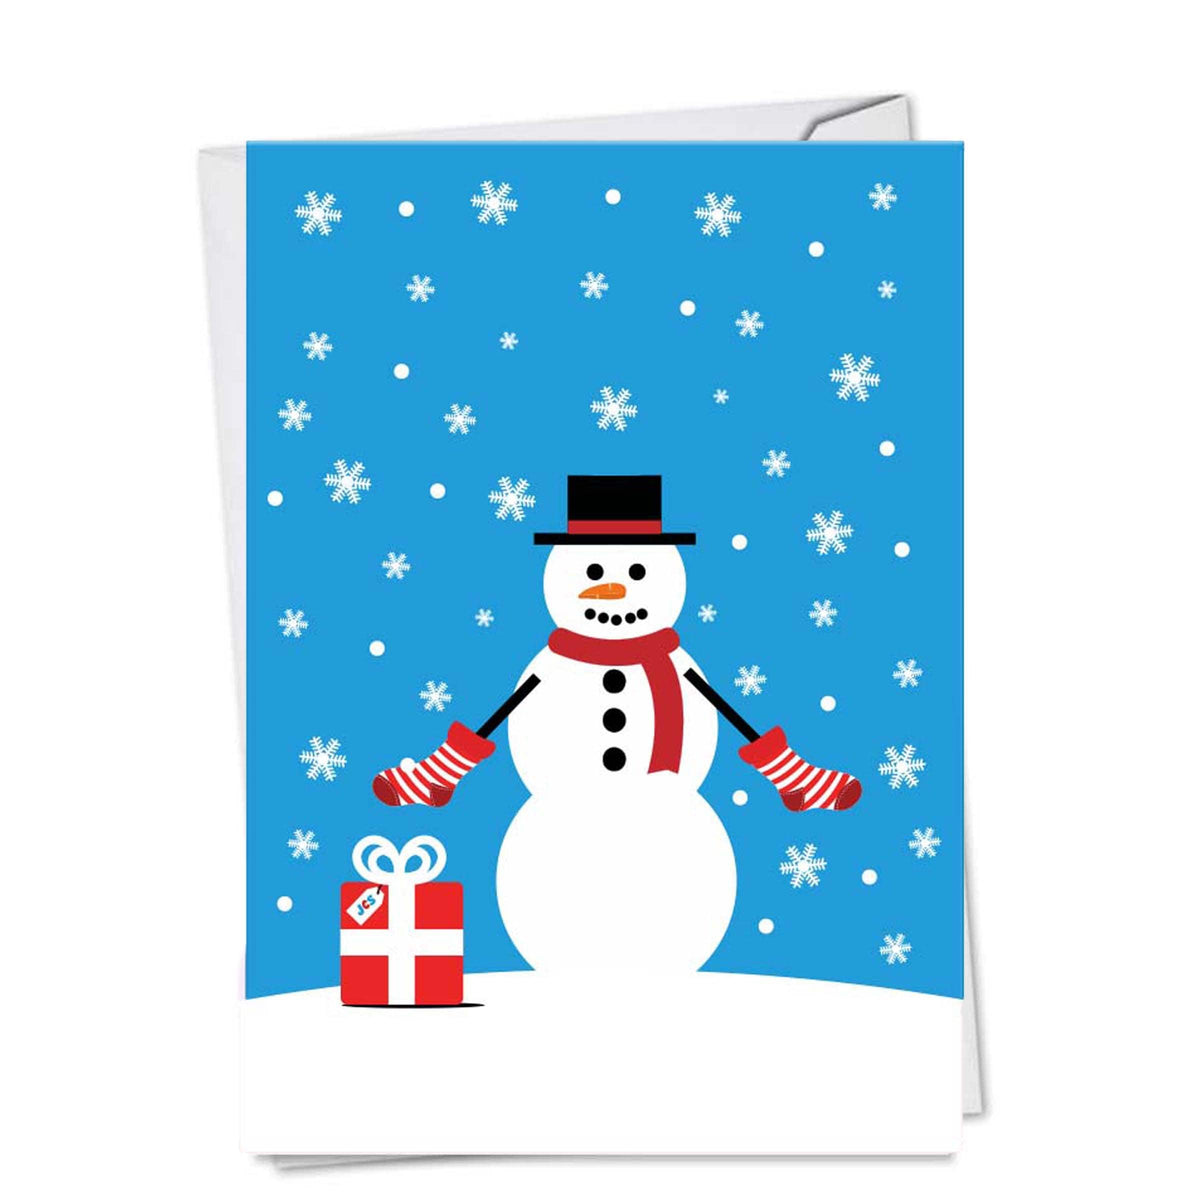 Snowman Holiday Greeting Card Single Card